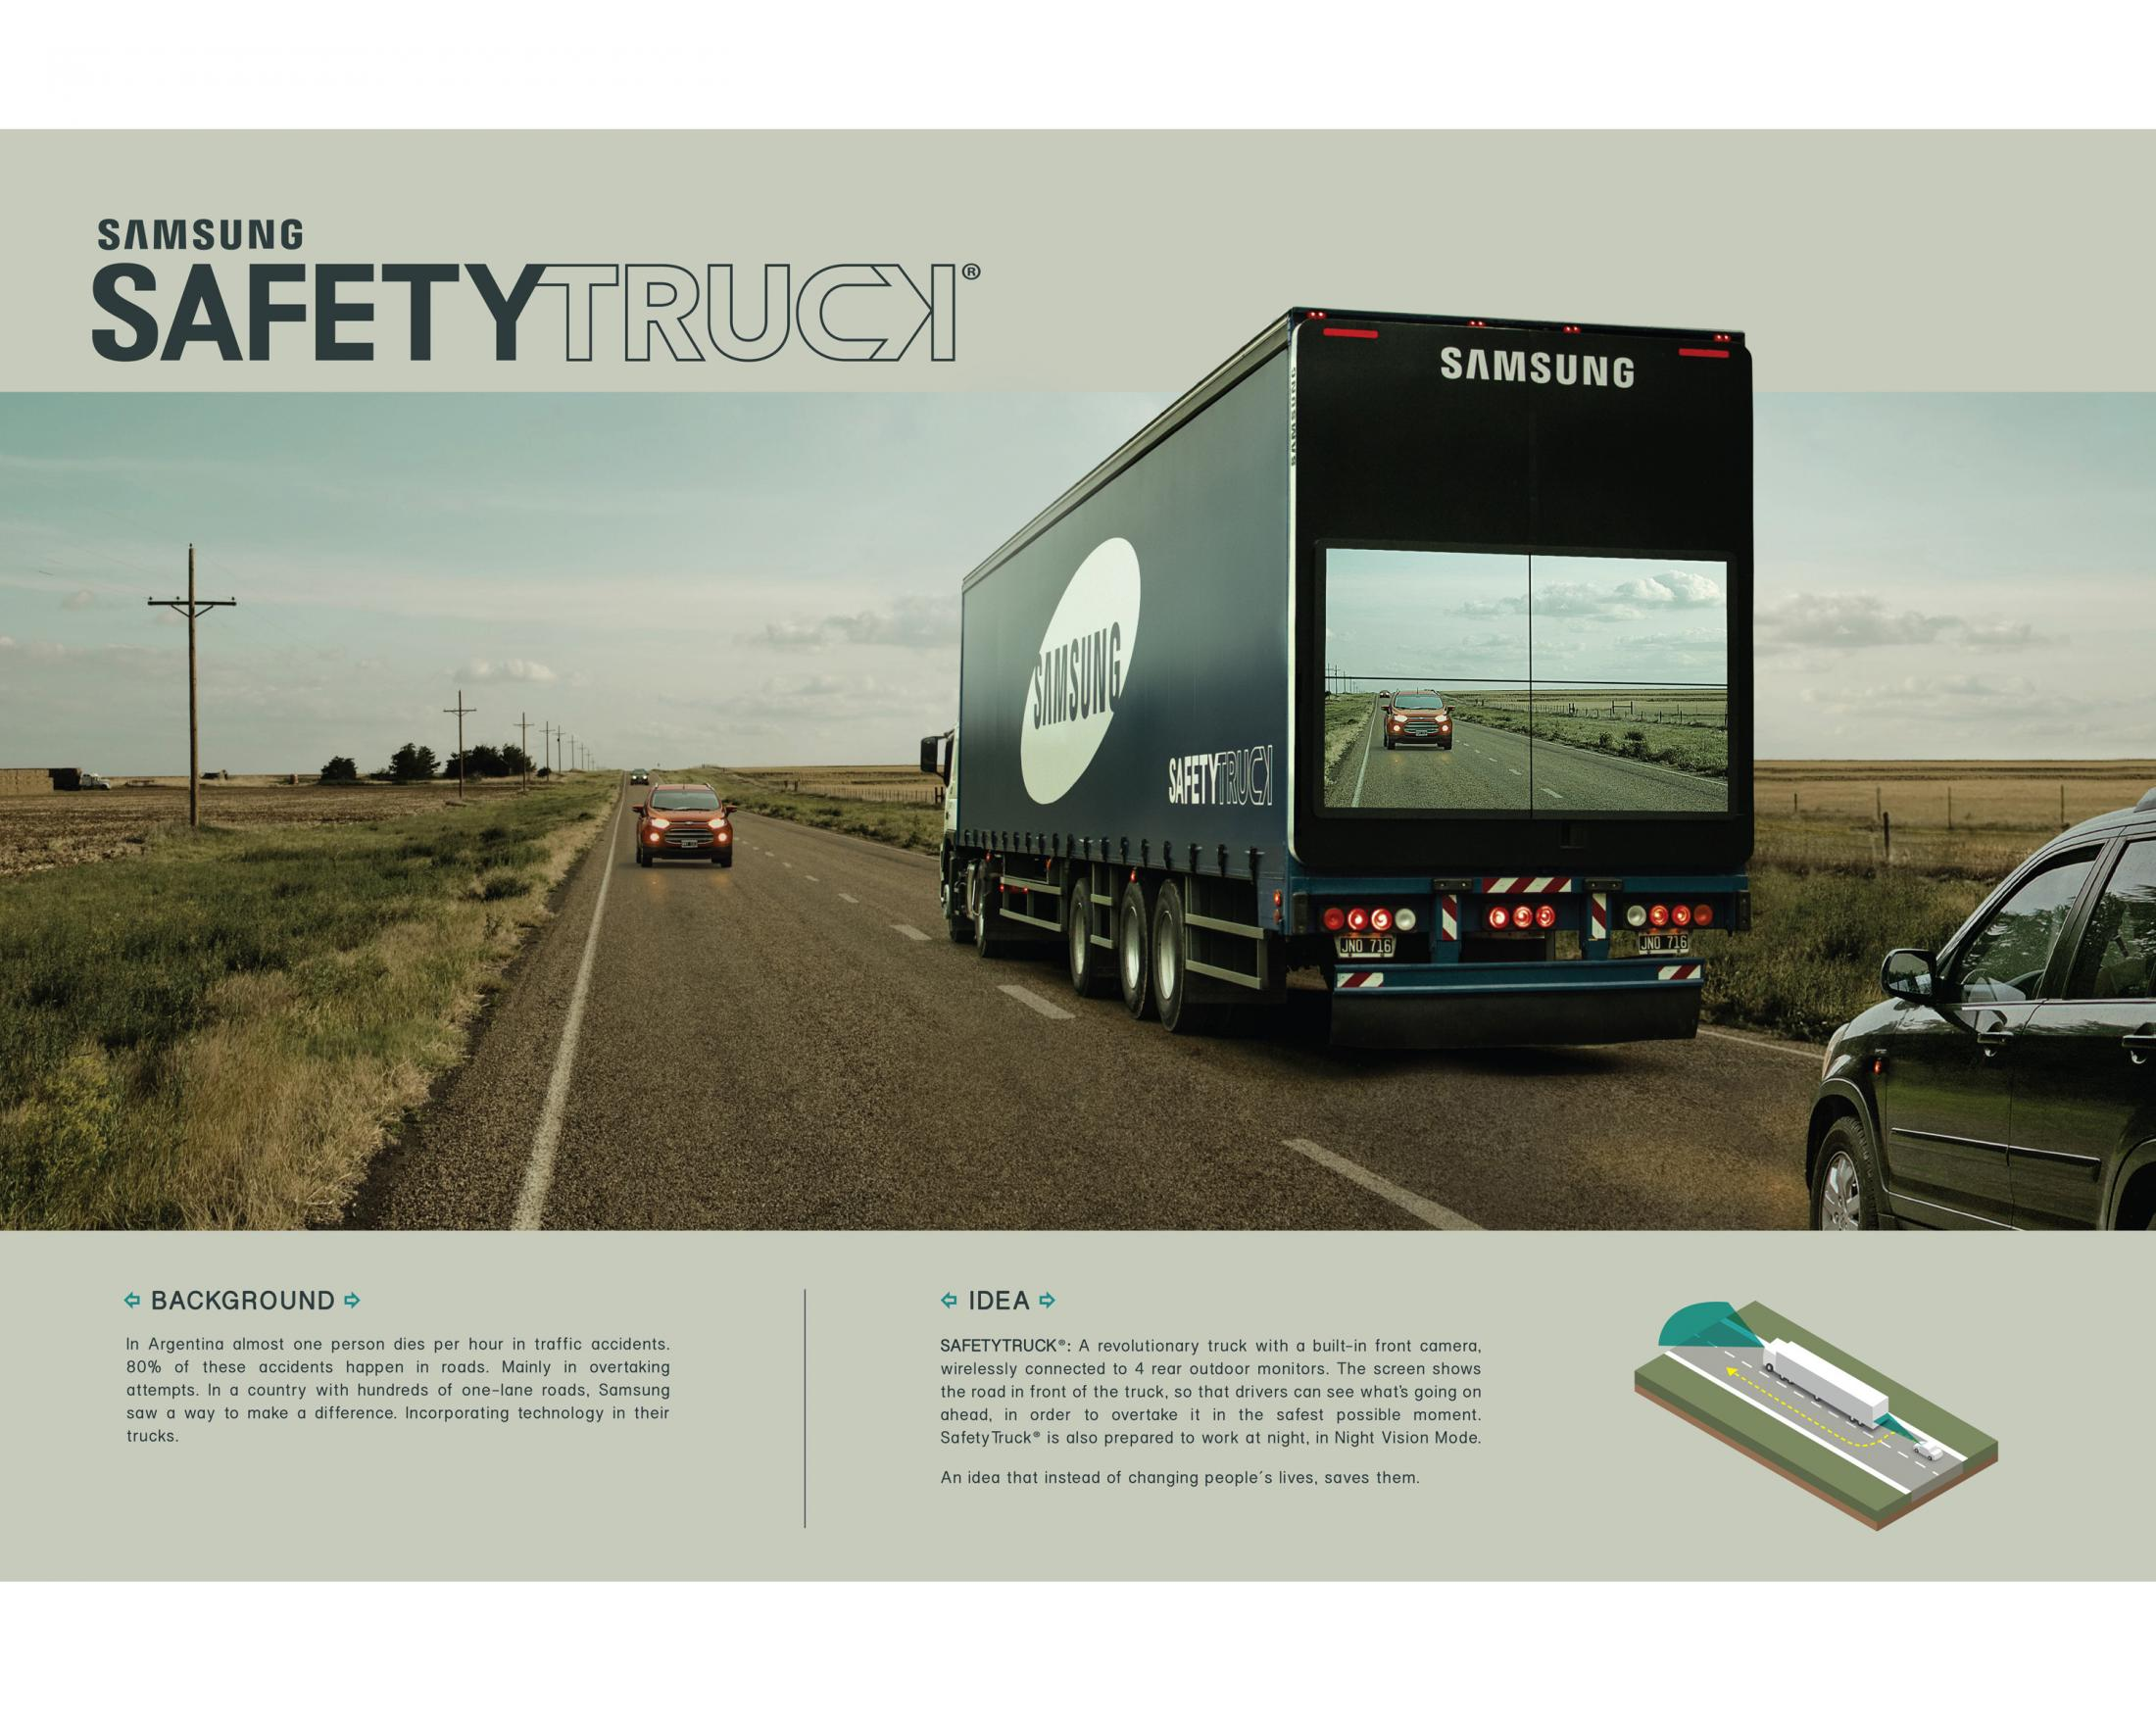 Thumbnail for Samsung Safety Truck